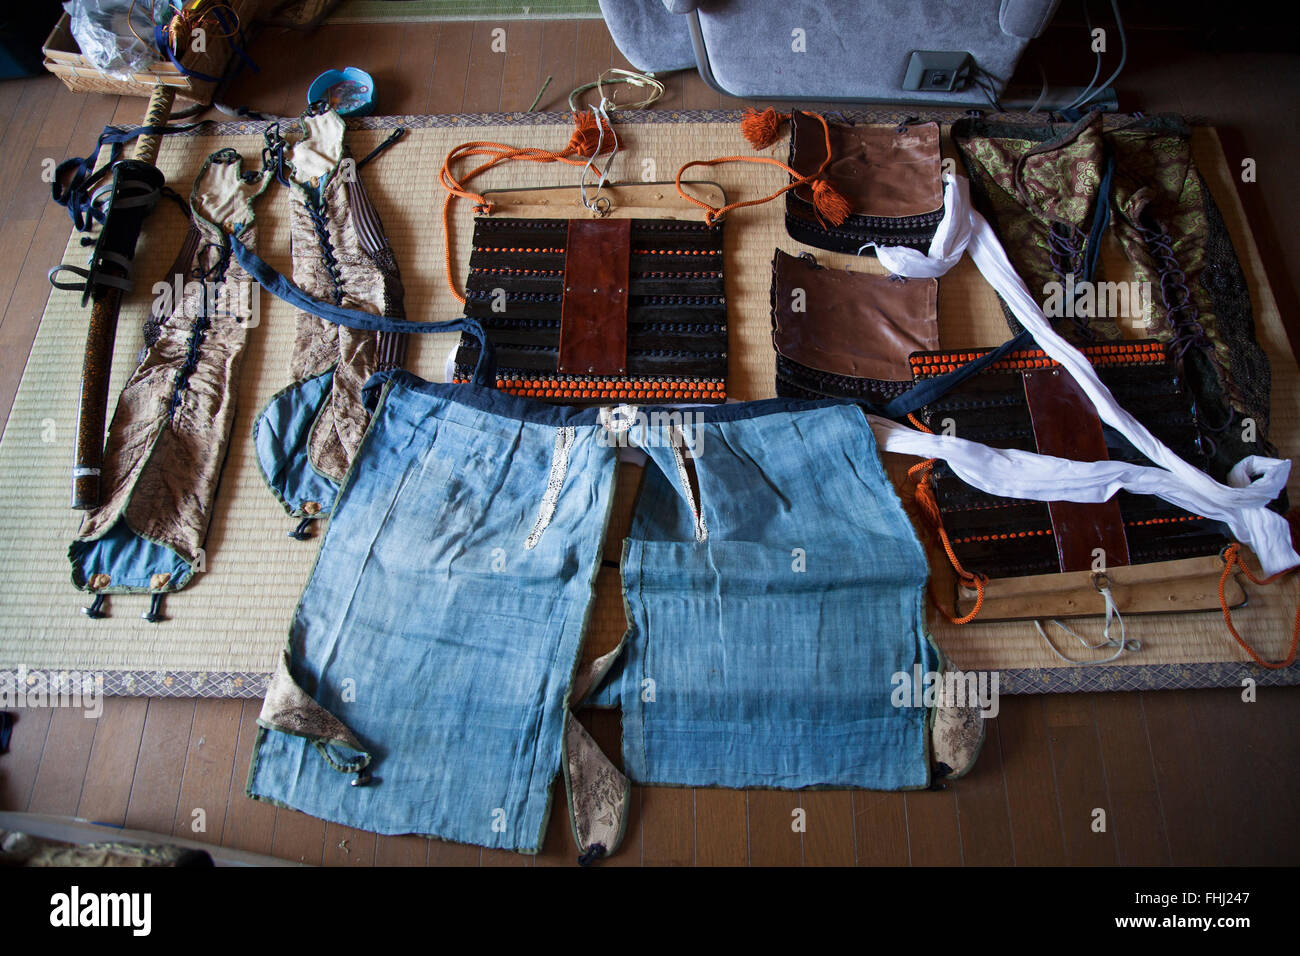 Japan / Fukushima  -  Many people lost their armor and weapons when their houses were washed away by the tsunami. - Stock Image